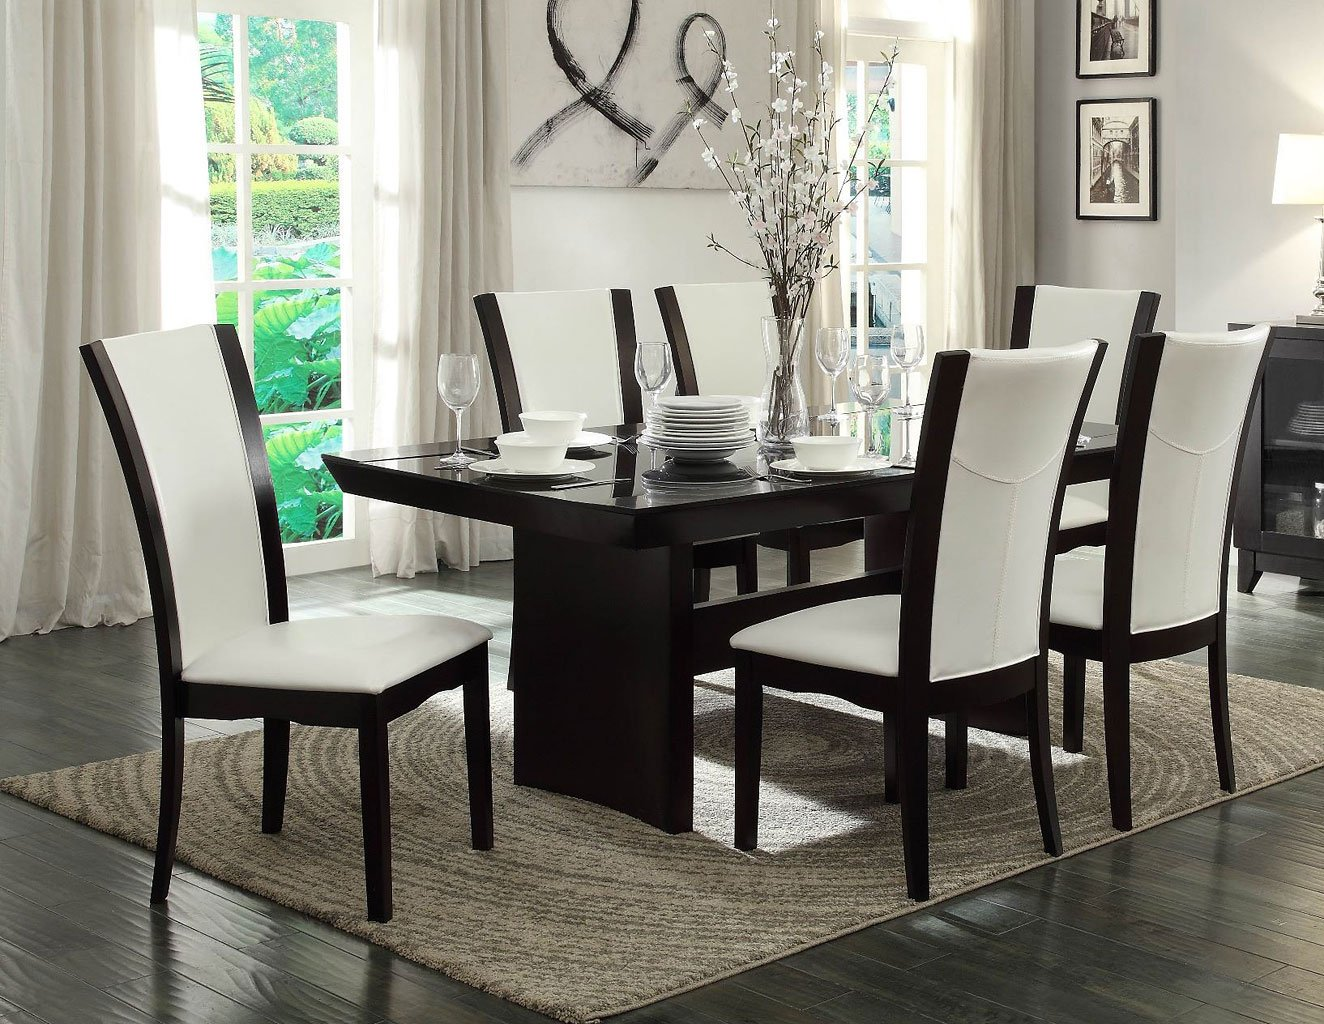 daisy glass insert dining room set w white chairs